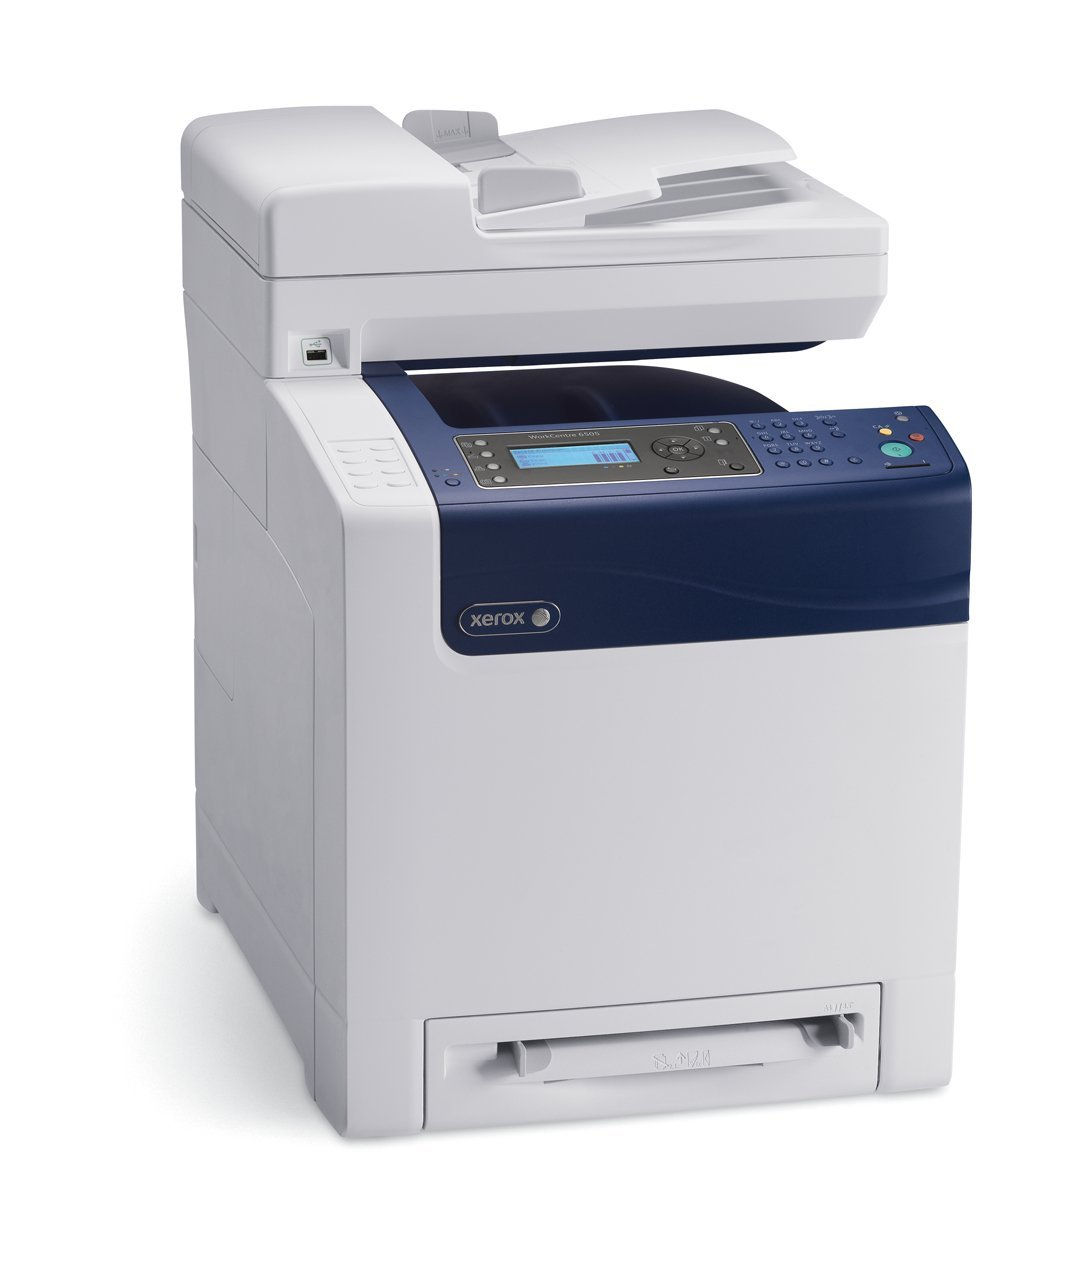 Xerox 3615 driver download